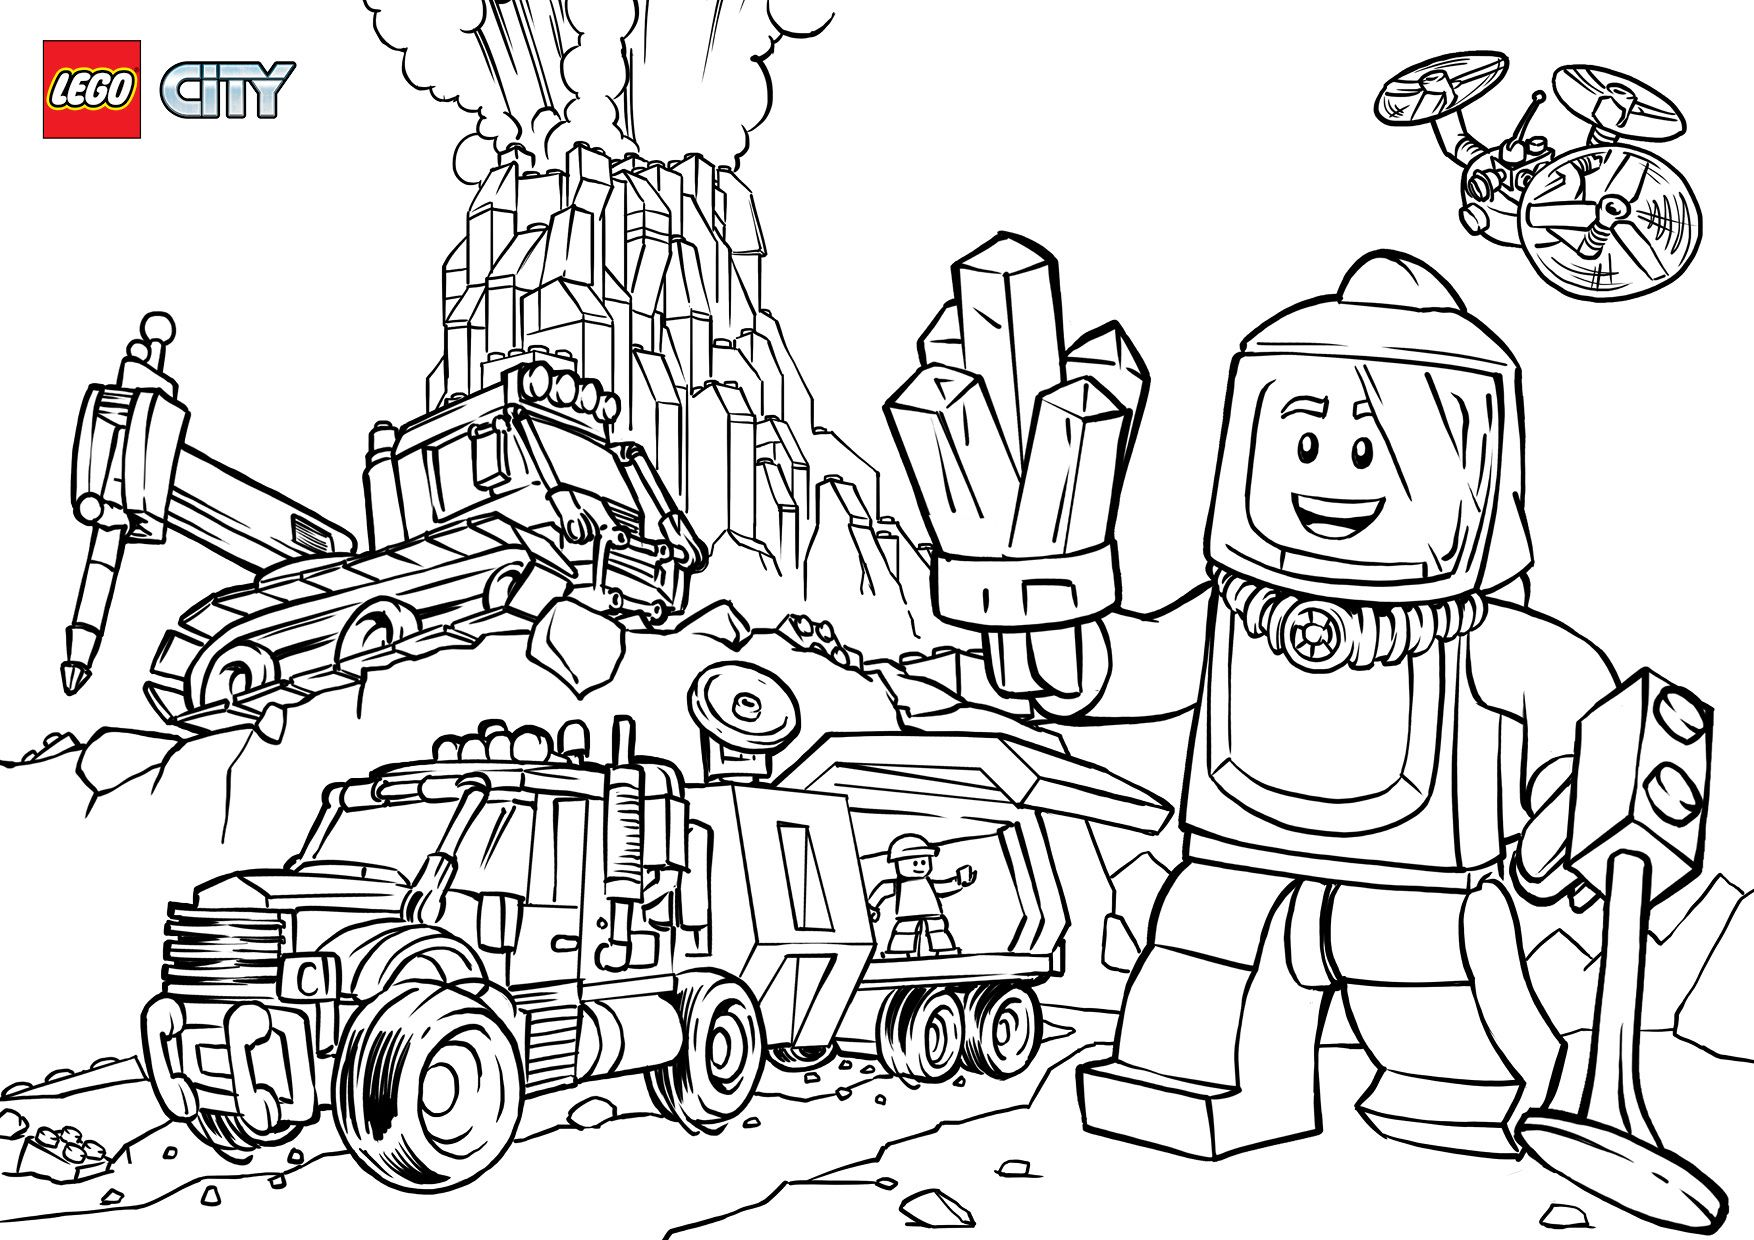 Image Result For Lego City Colouring Pages